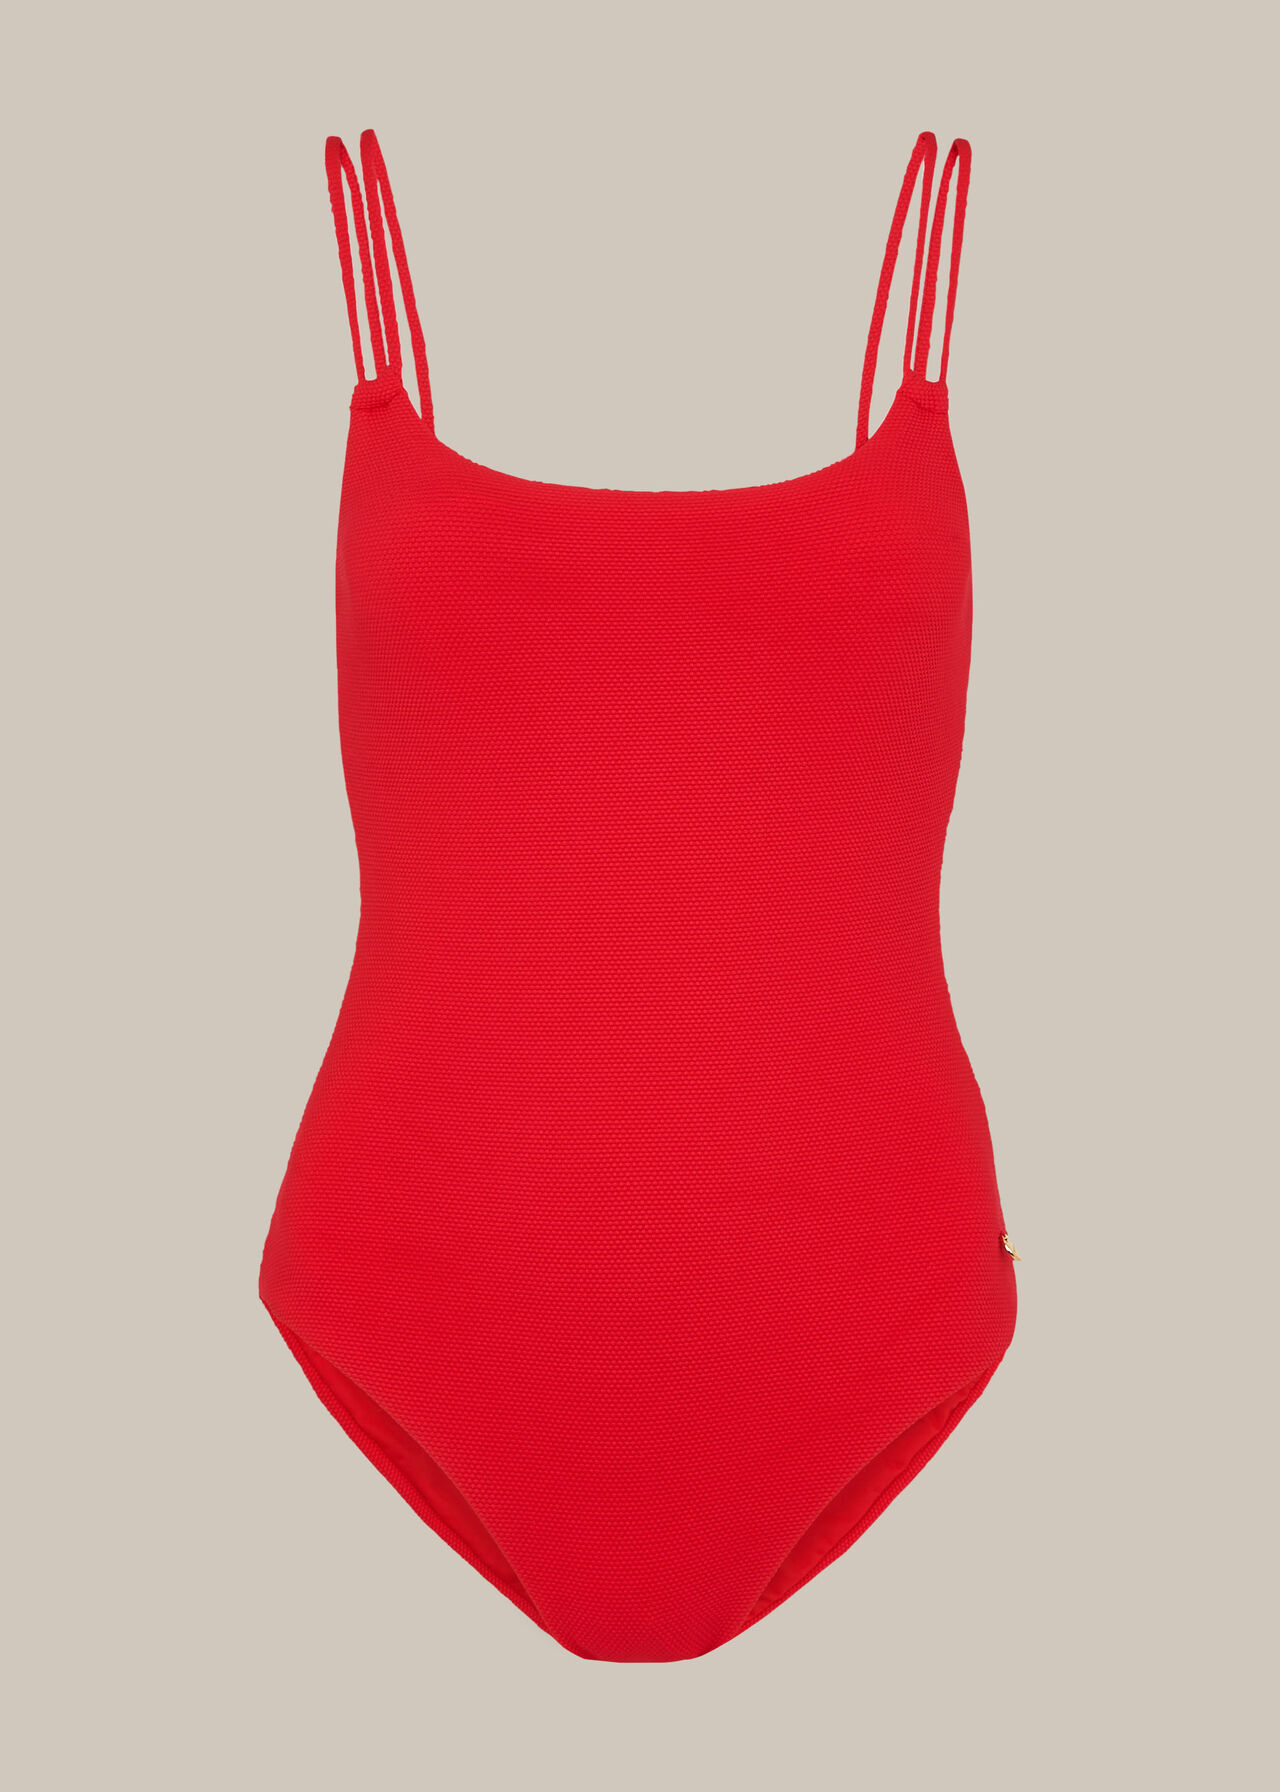 Double Strap Textured Swimsuit Red